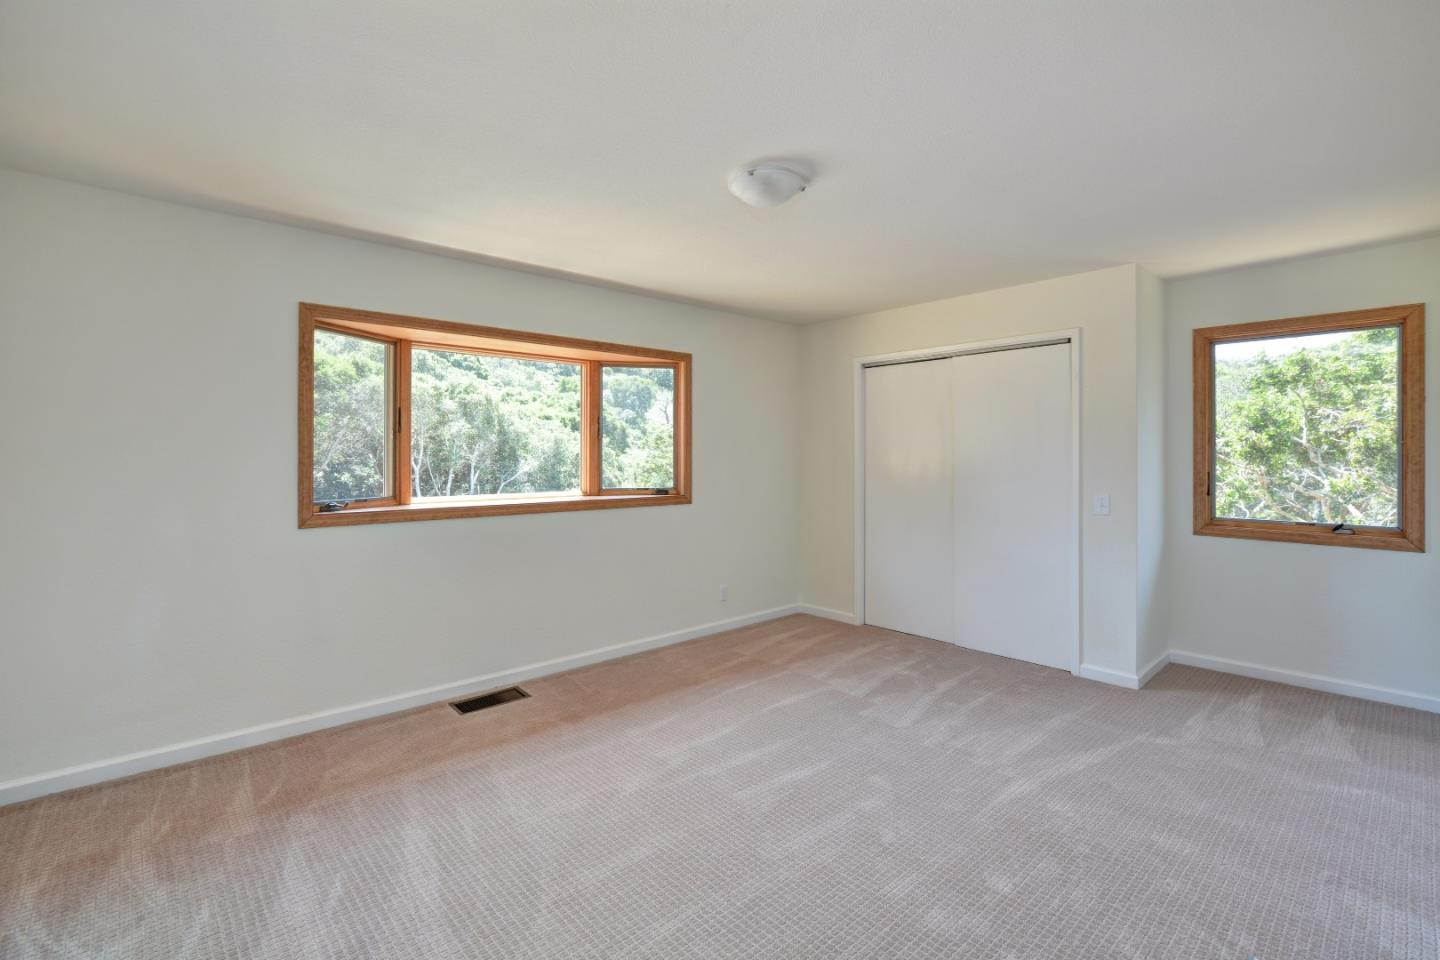 Additional photo for property listing at 25980 Colt Lane  Carmel Valley, Kalifornien 93924 Vereinigte Staaten